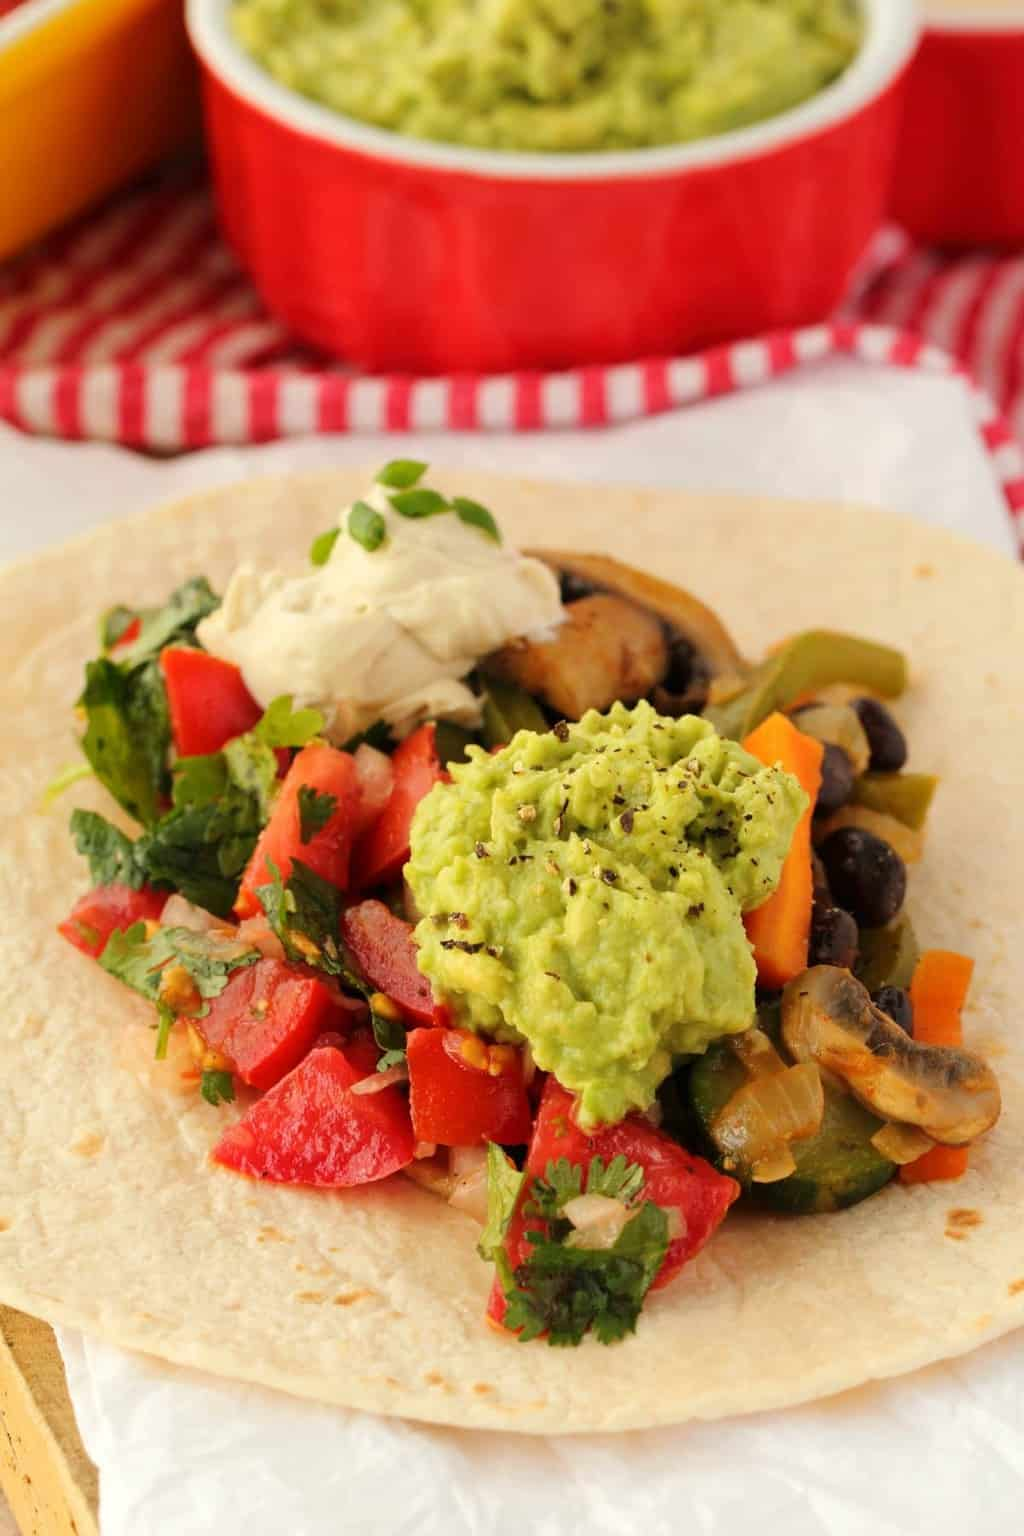 Veggie Fajitas topped with guacamole and sour cream.